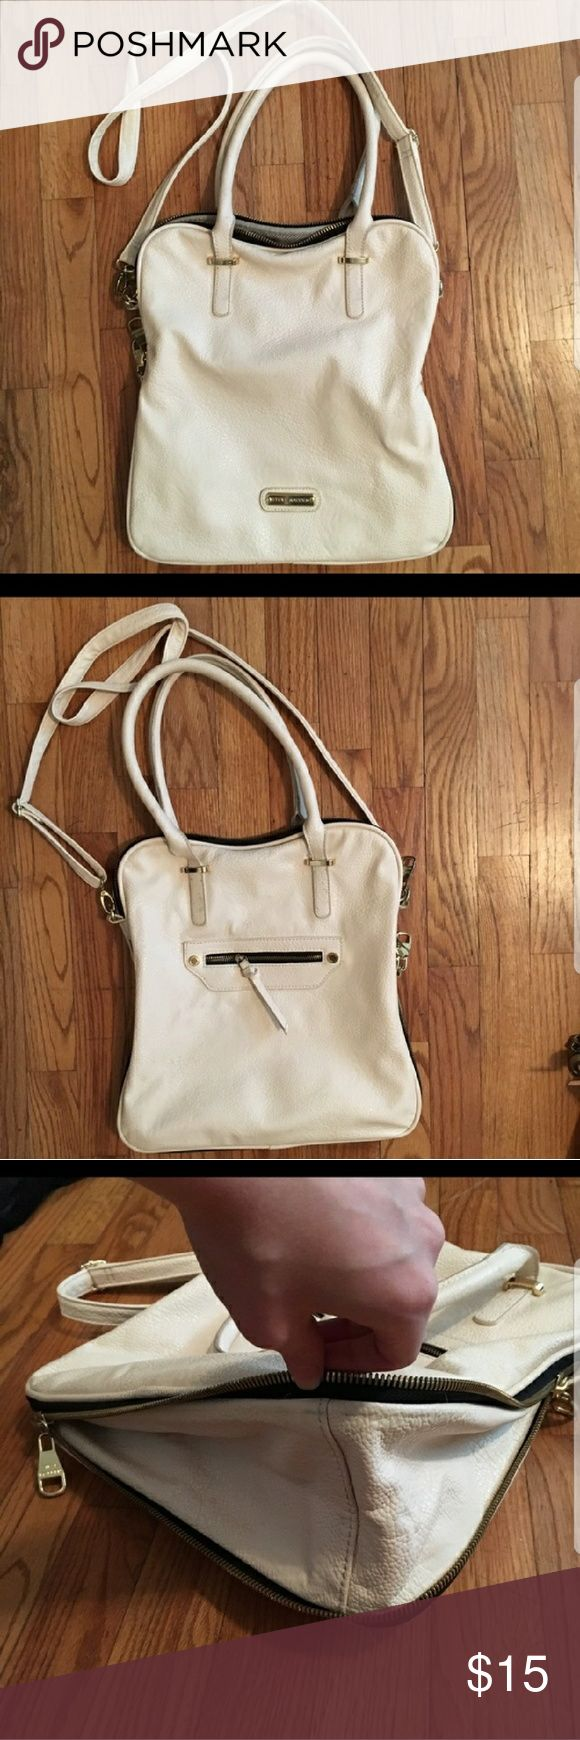 Steve Madden expandable purse Steve Madden expandable purse...I purchased on Poshmark, but it didn't meet my personal needs. Gently used. Steve Madden Bags Shoulder Bags